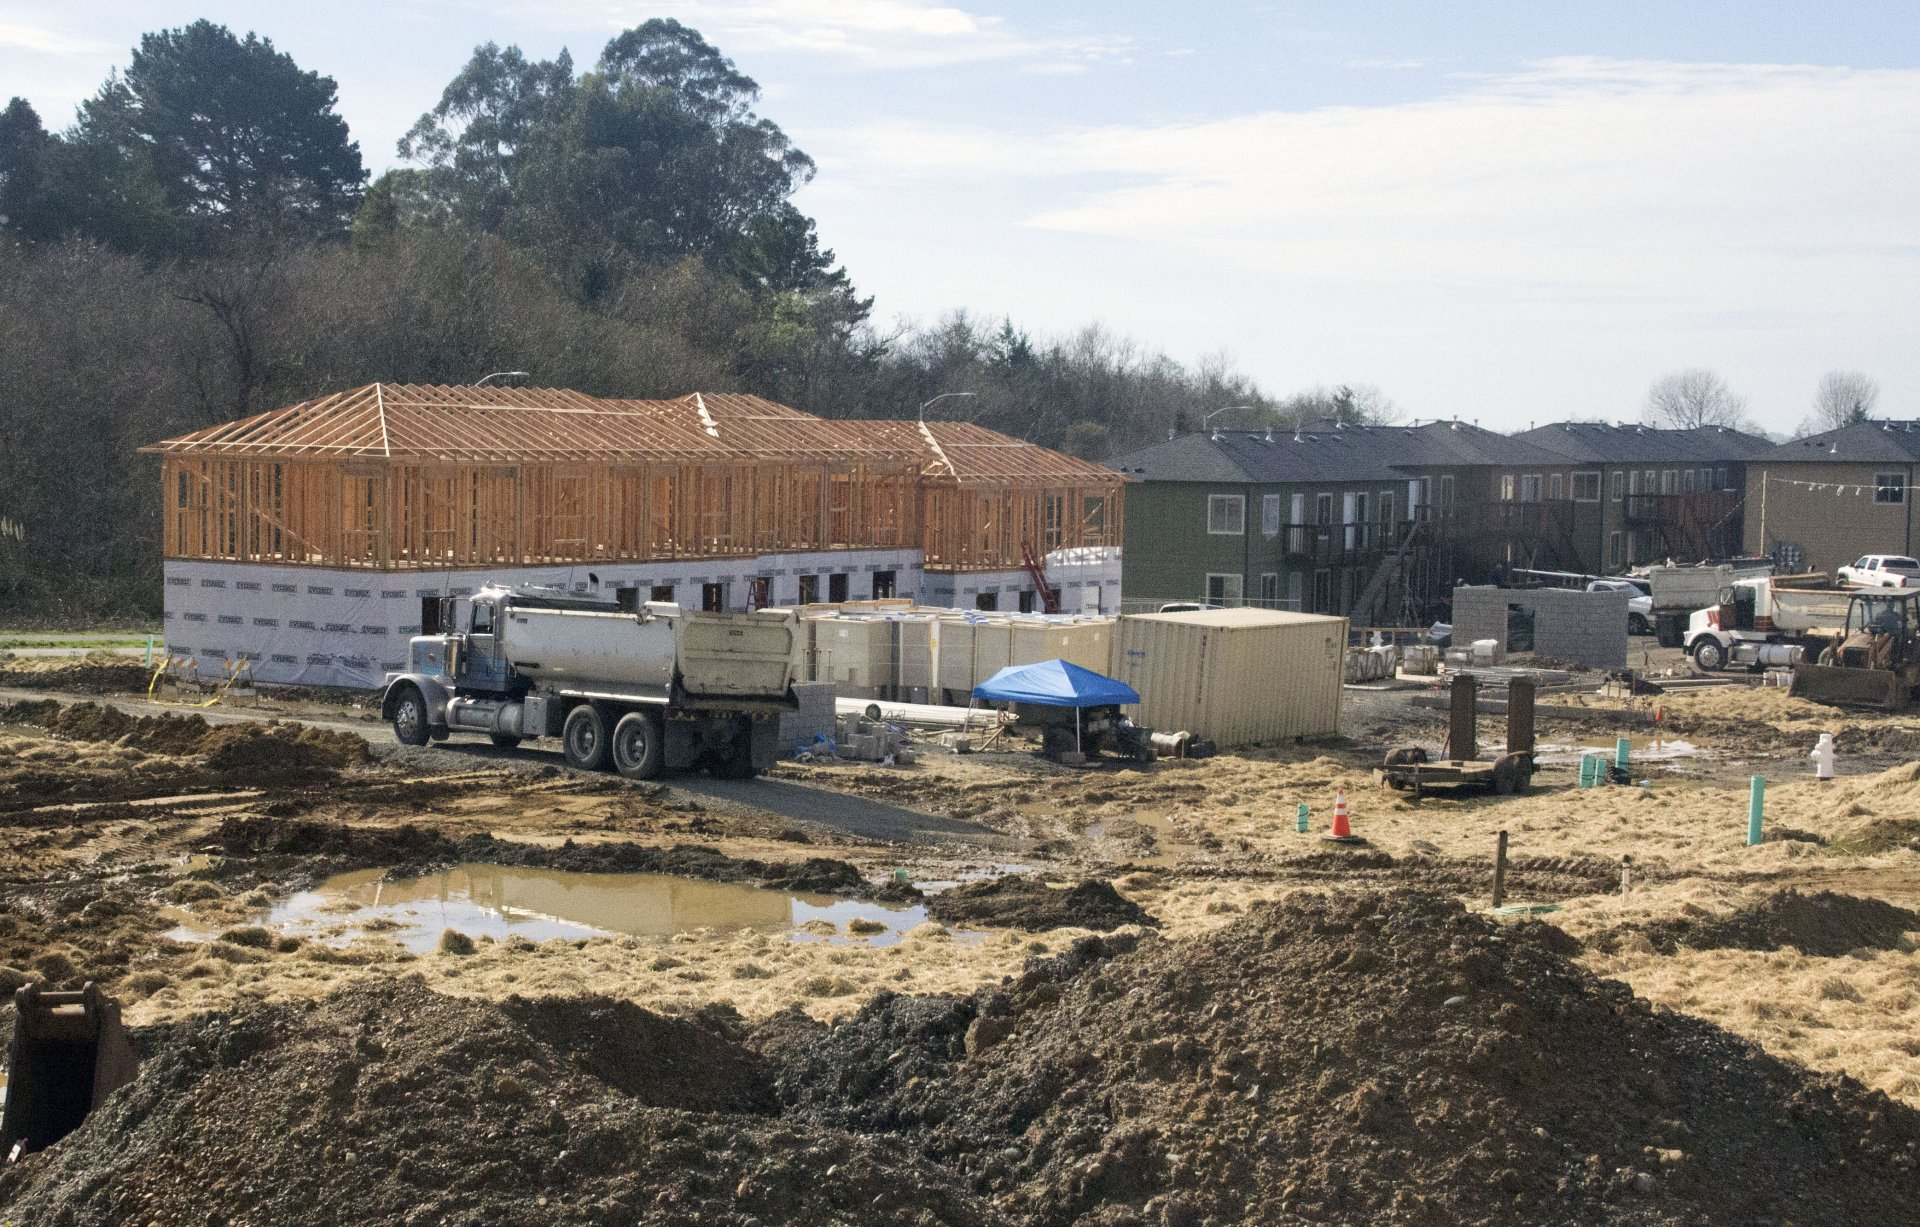 Construction site of the Sunset Terrace Apartments on Foster Ave. in Arcata. Photo by Surya Gopalan.